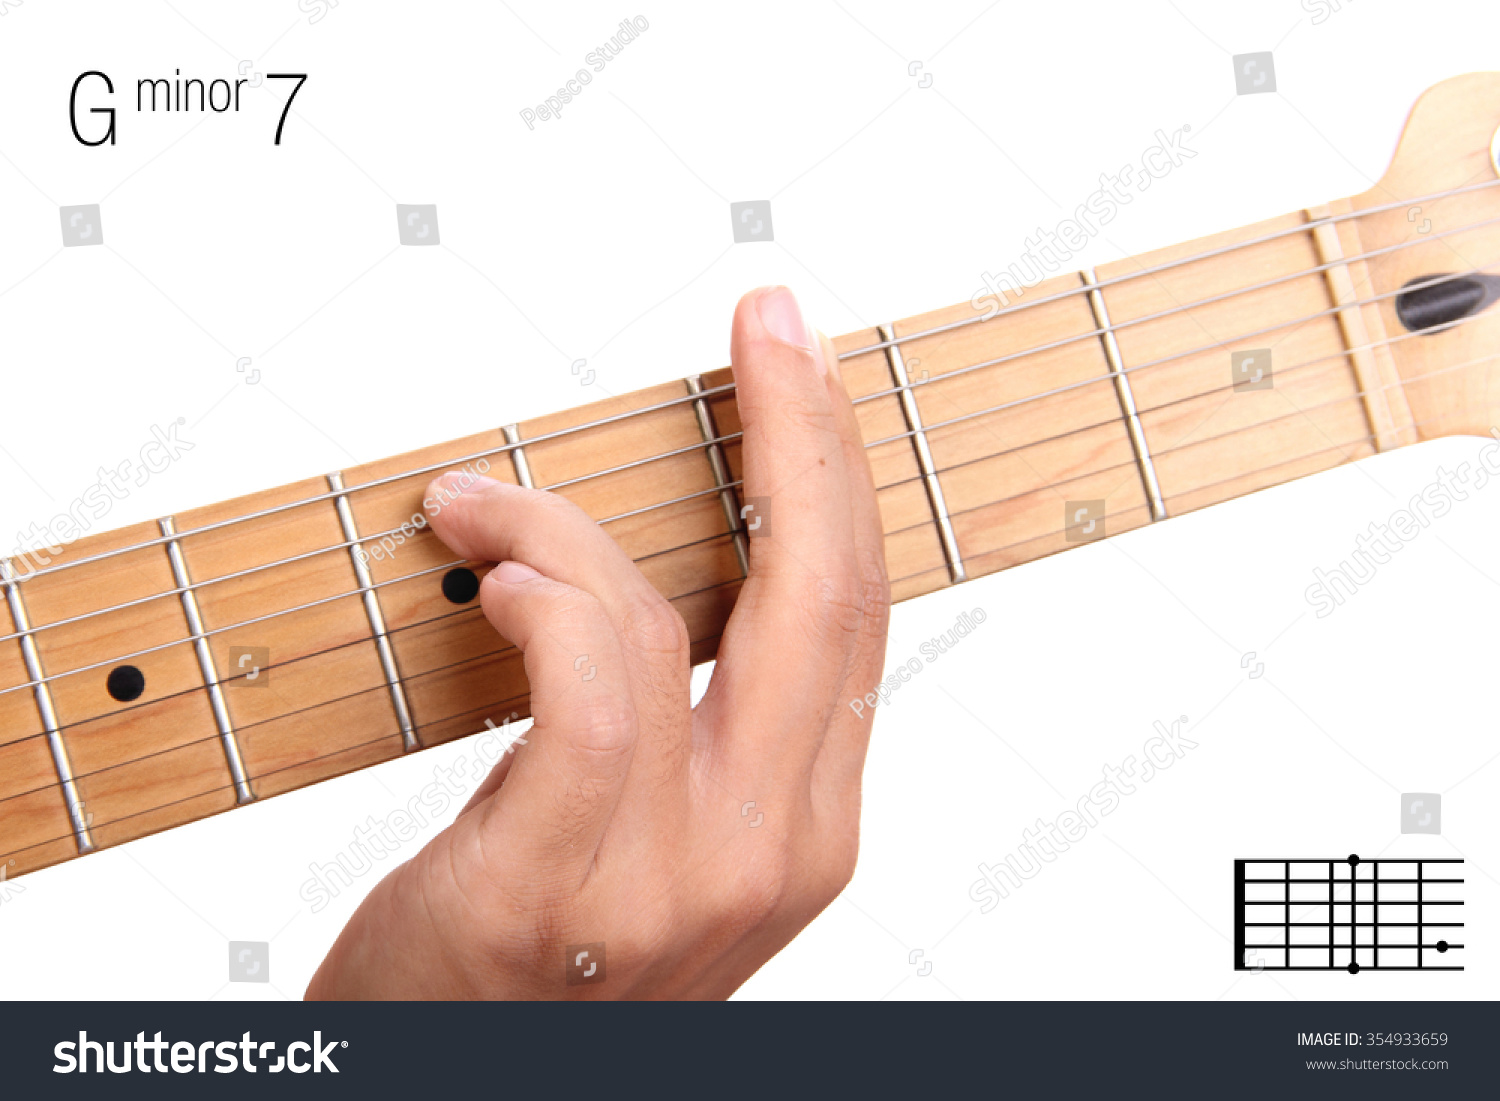 Royalty Free Gm7 Minor Seventh Keys Guitar 354933659 Stock Photo